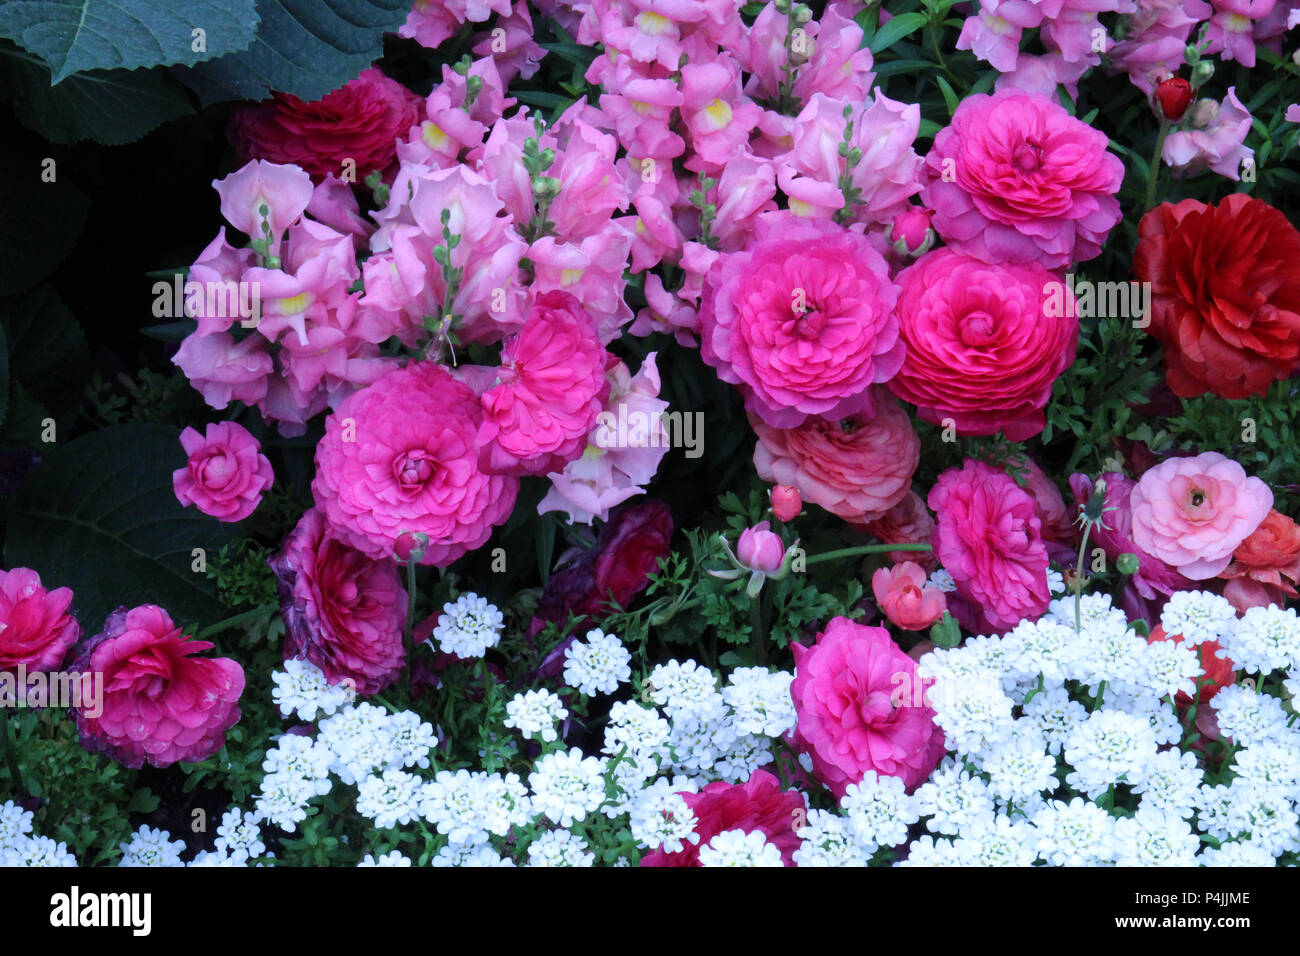 A flower bed filled with pink, peach, and red Ranunculus, pink Snapdragons and white Candytuft flowers Stock Photo